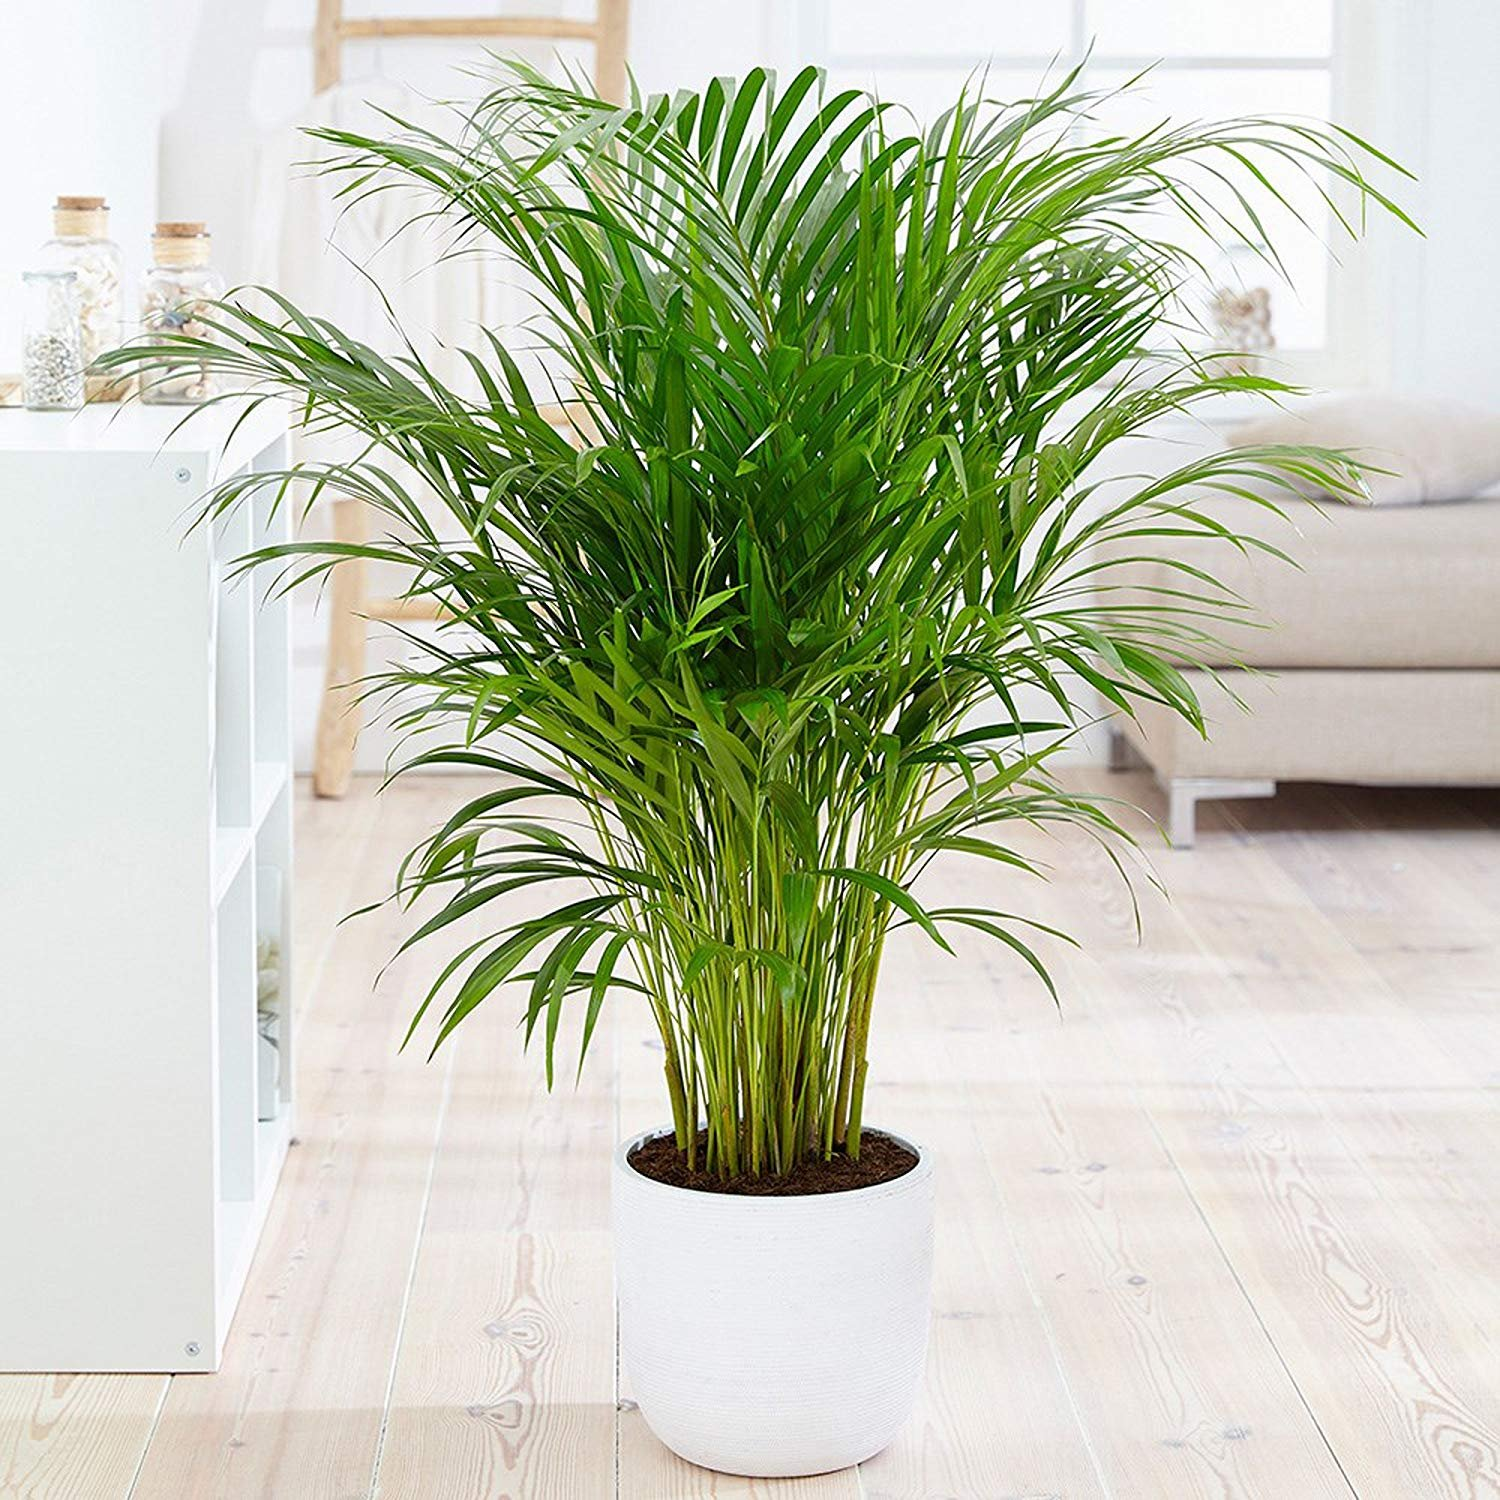 A must have indoor plant